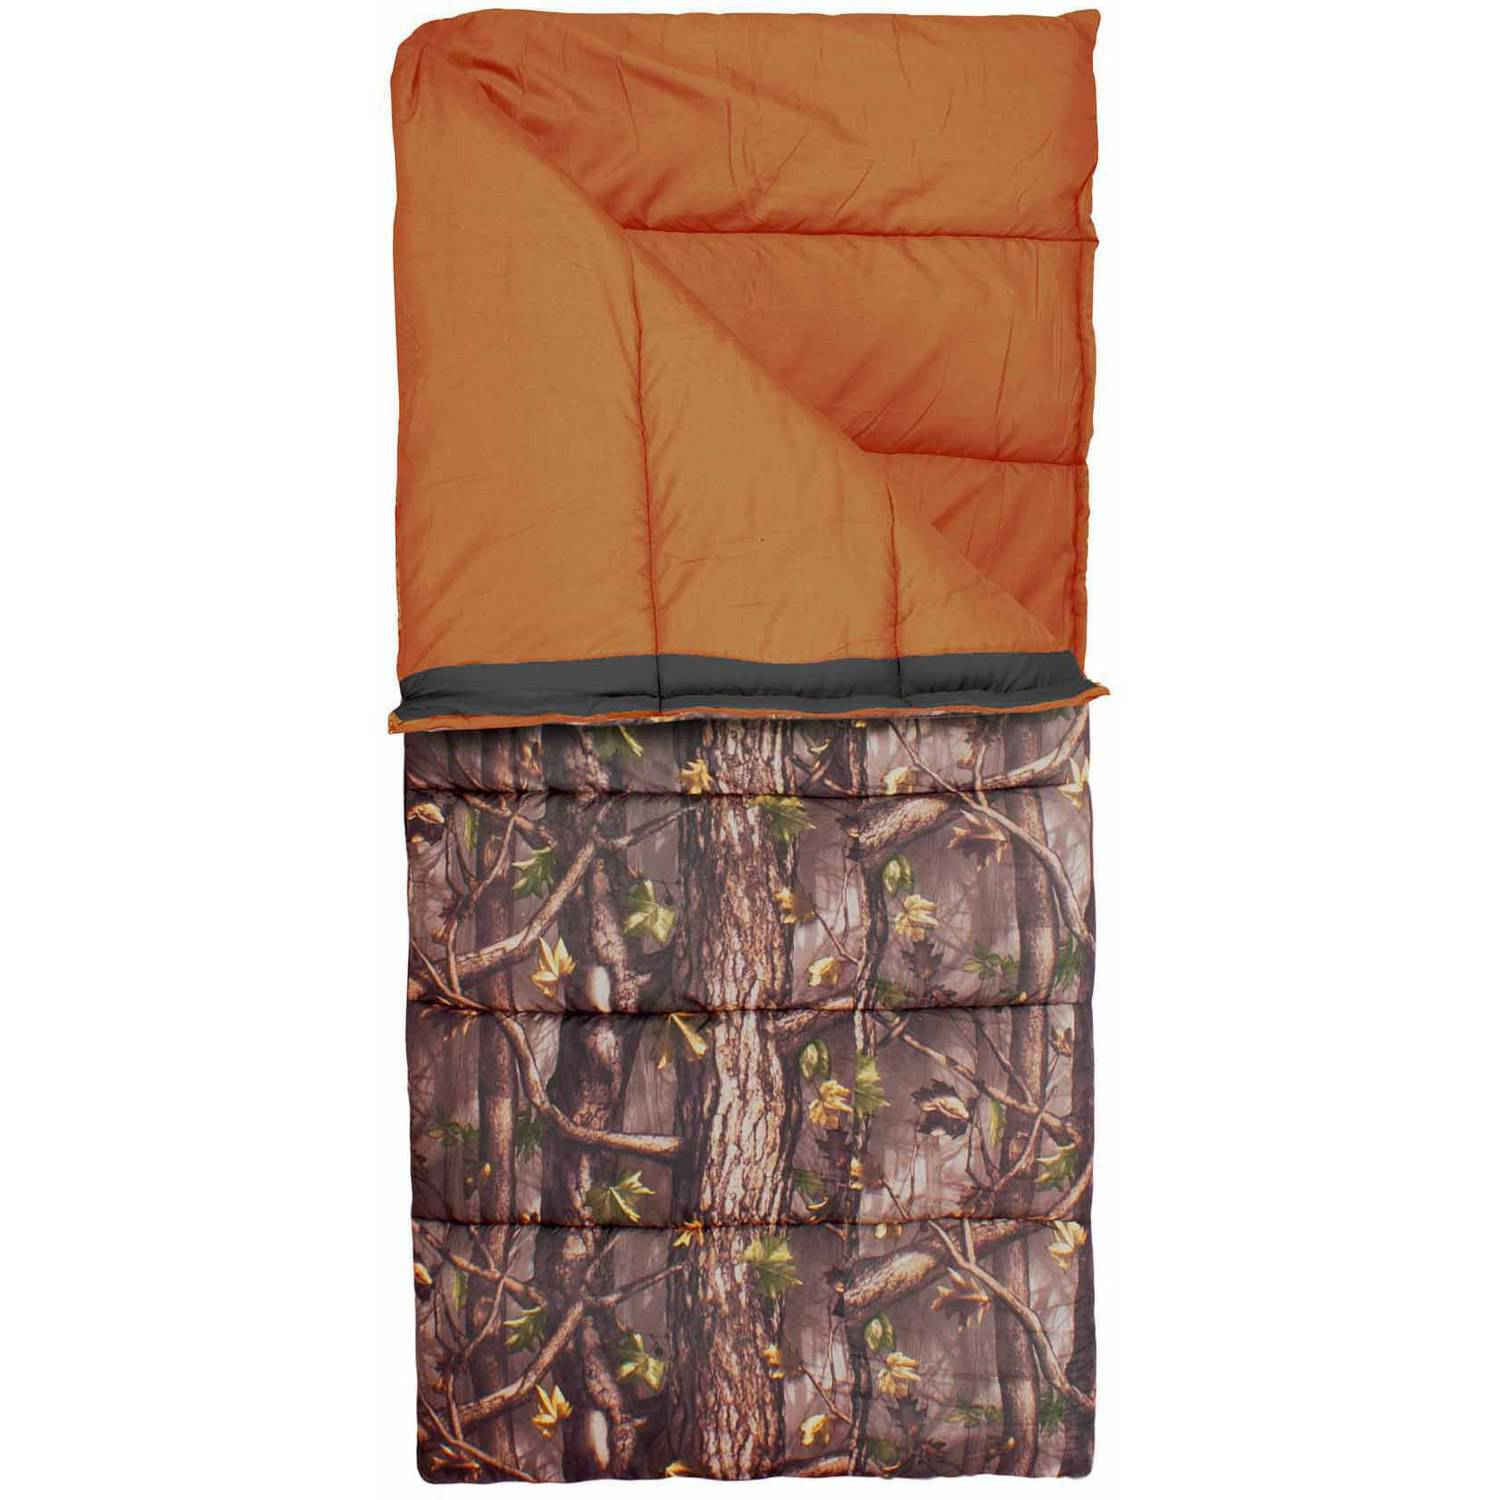 Exxel Outdoors Youth Outdoorsman 25-35 Degrees Sleeping Bag, Camo